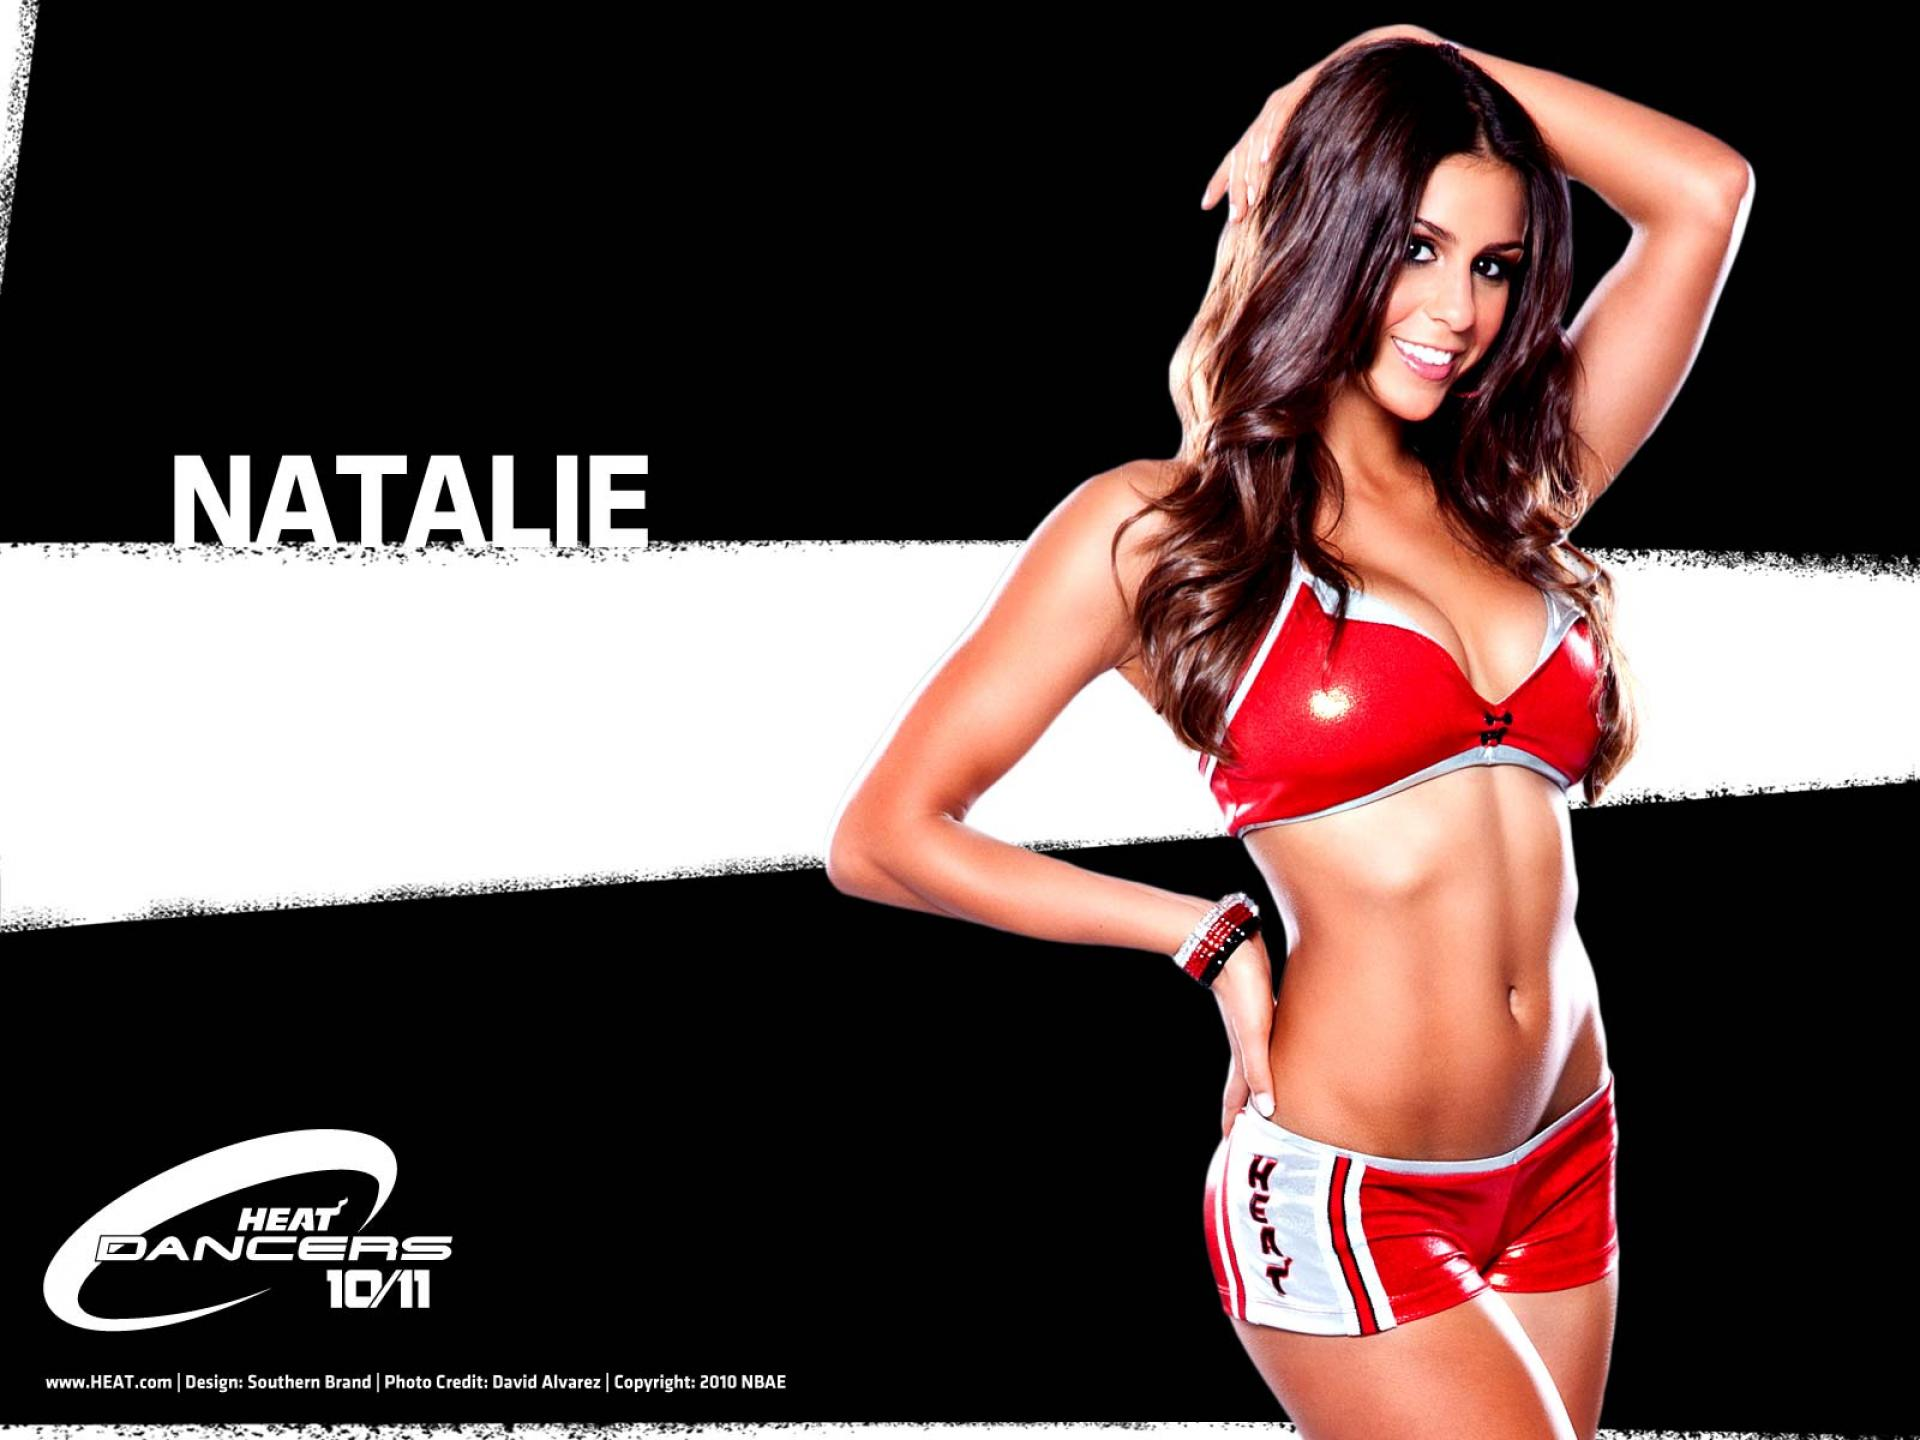 NBA Dancers   Miami Heat   natalie   United States  USA Pictures HD Wallpaper